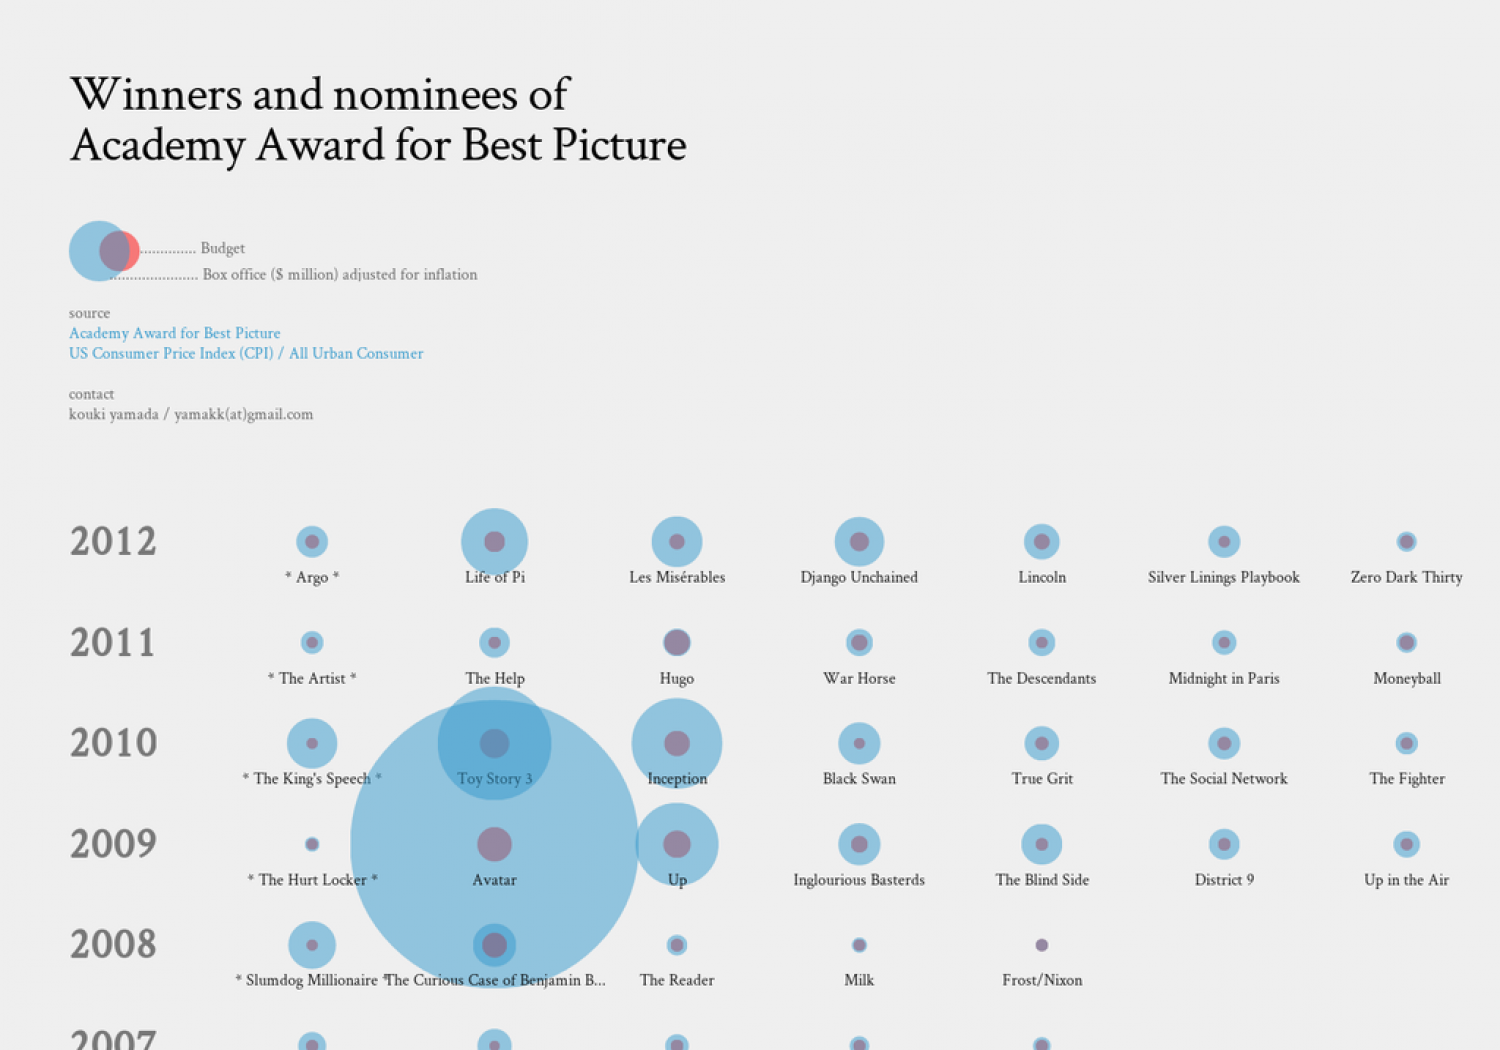 Winners and nominees of Academy Award for Best Picture Infographic